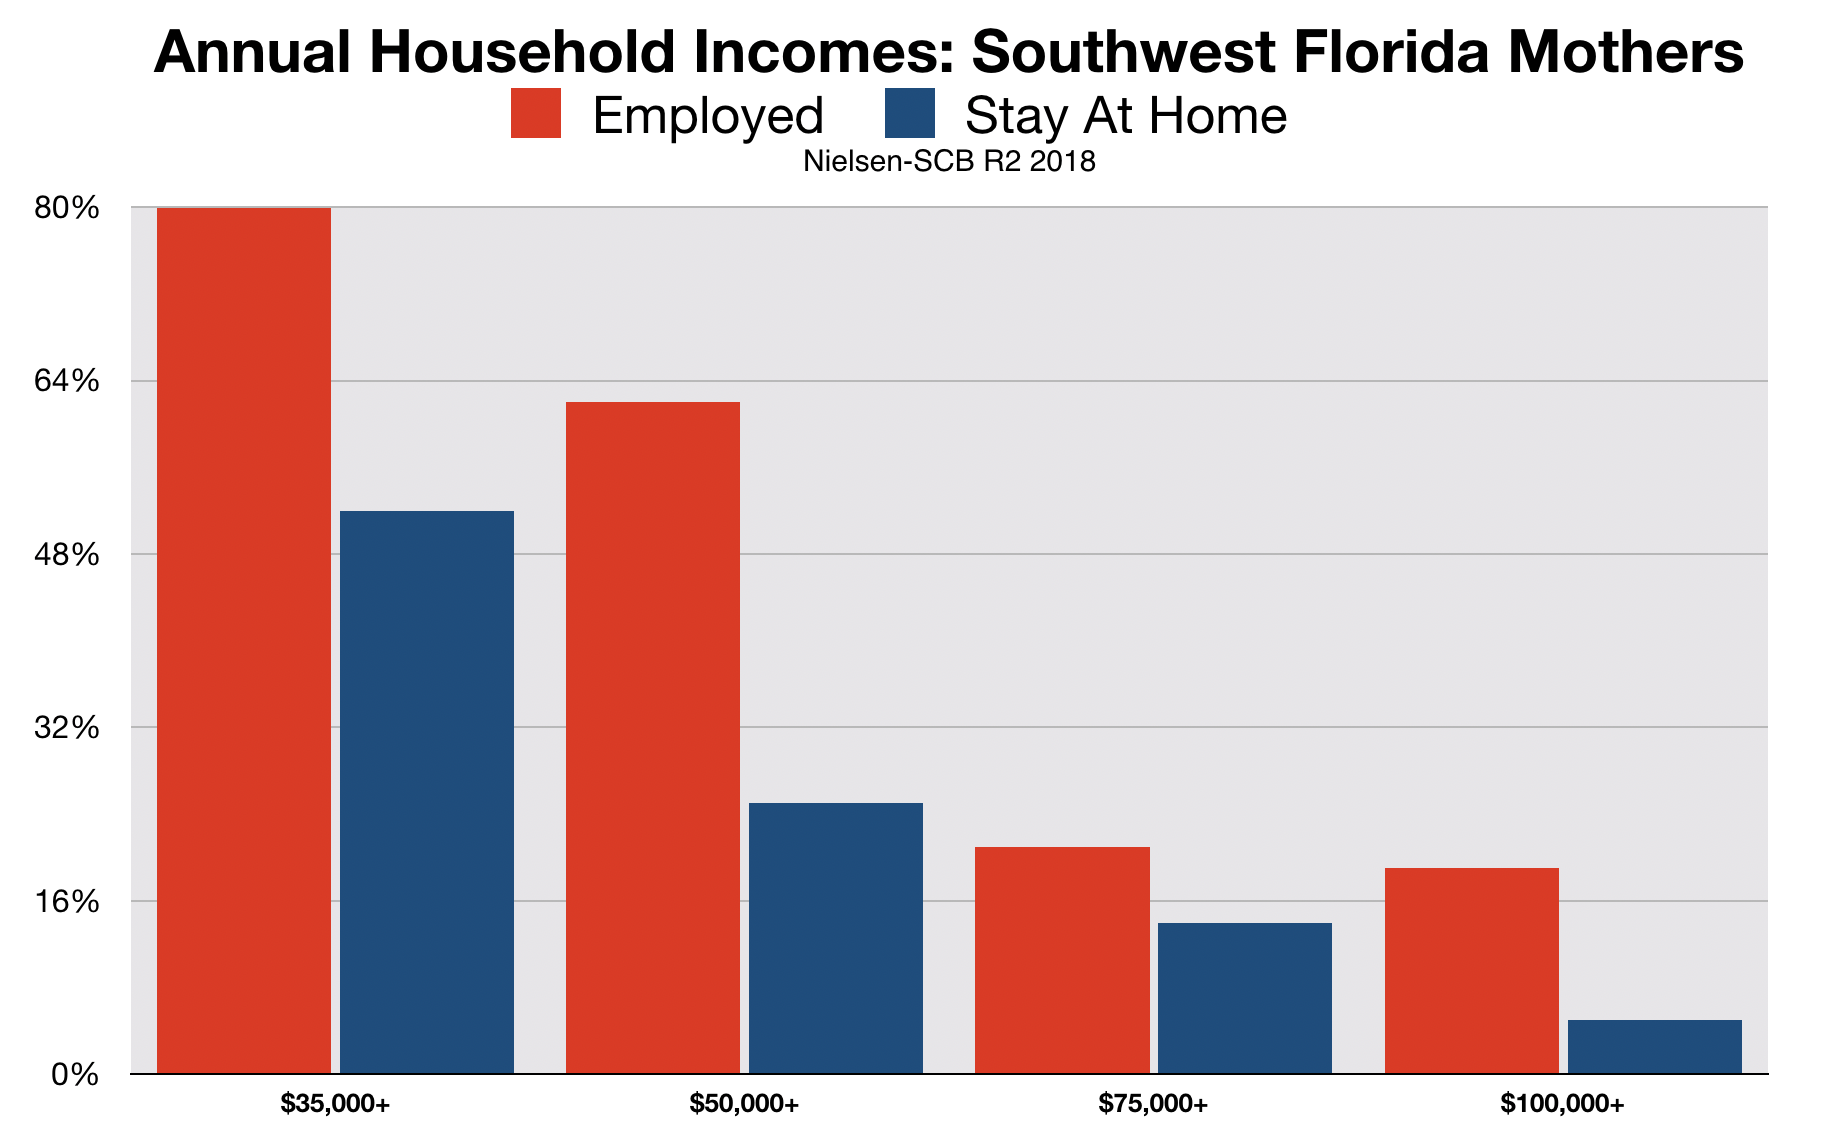 Southwest Florida Working Mothers By Income